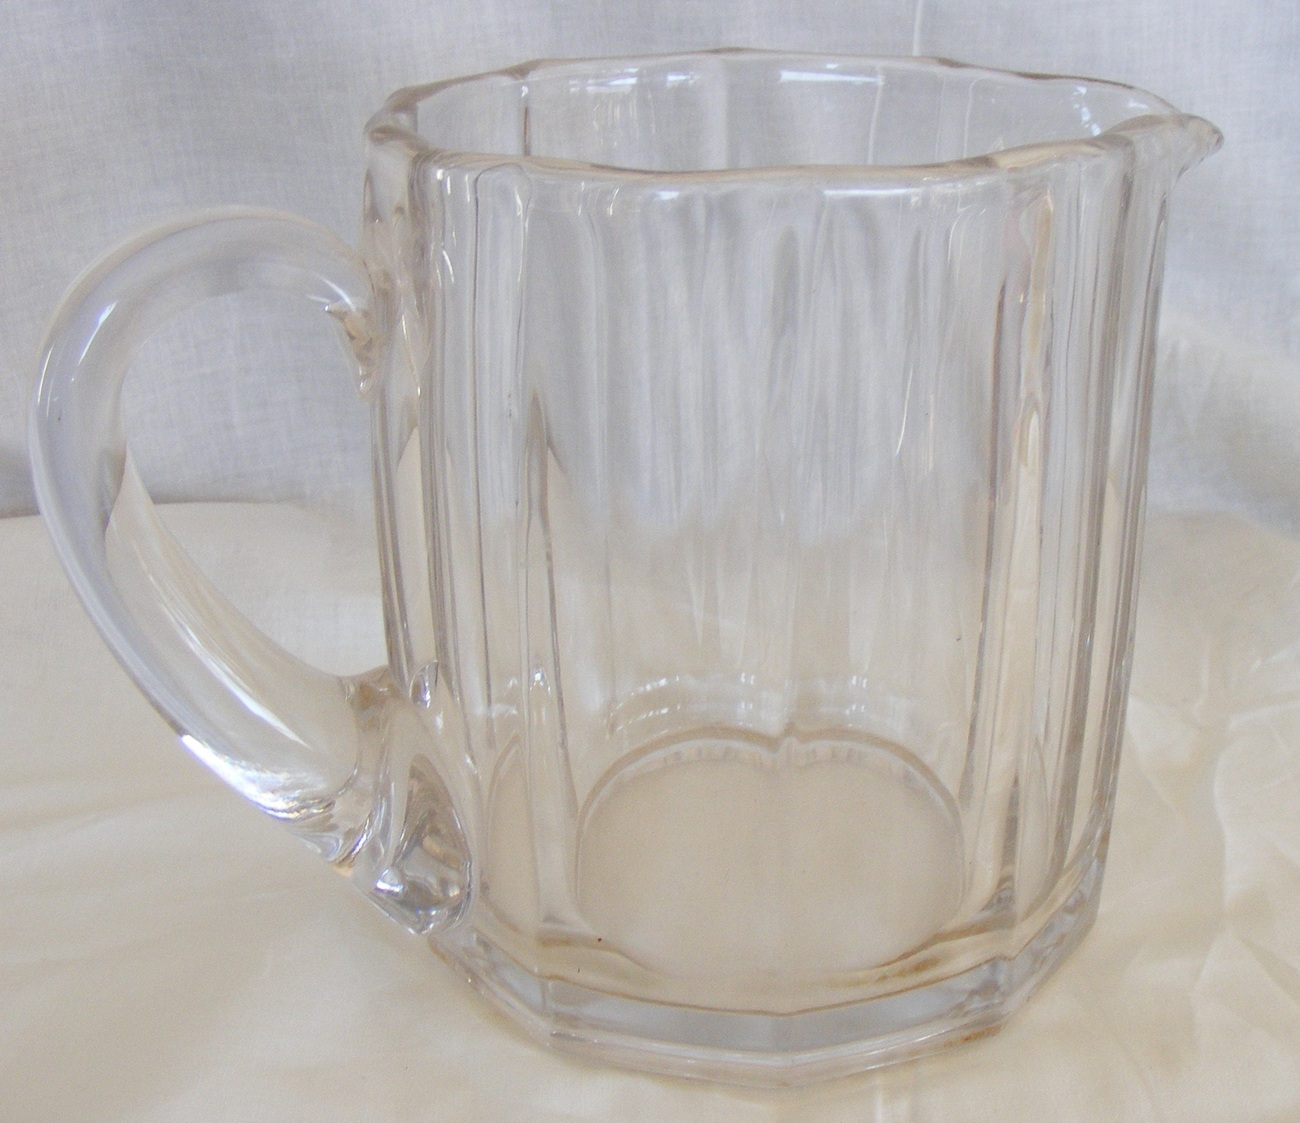 Heavy thick glass beer beverage vintage pitcher 1 quart